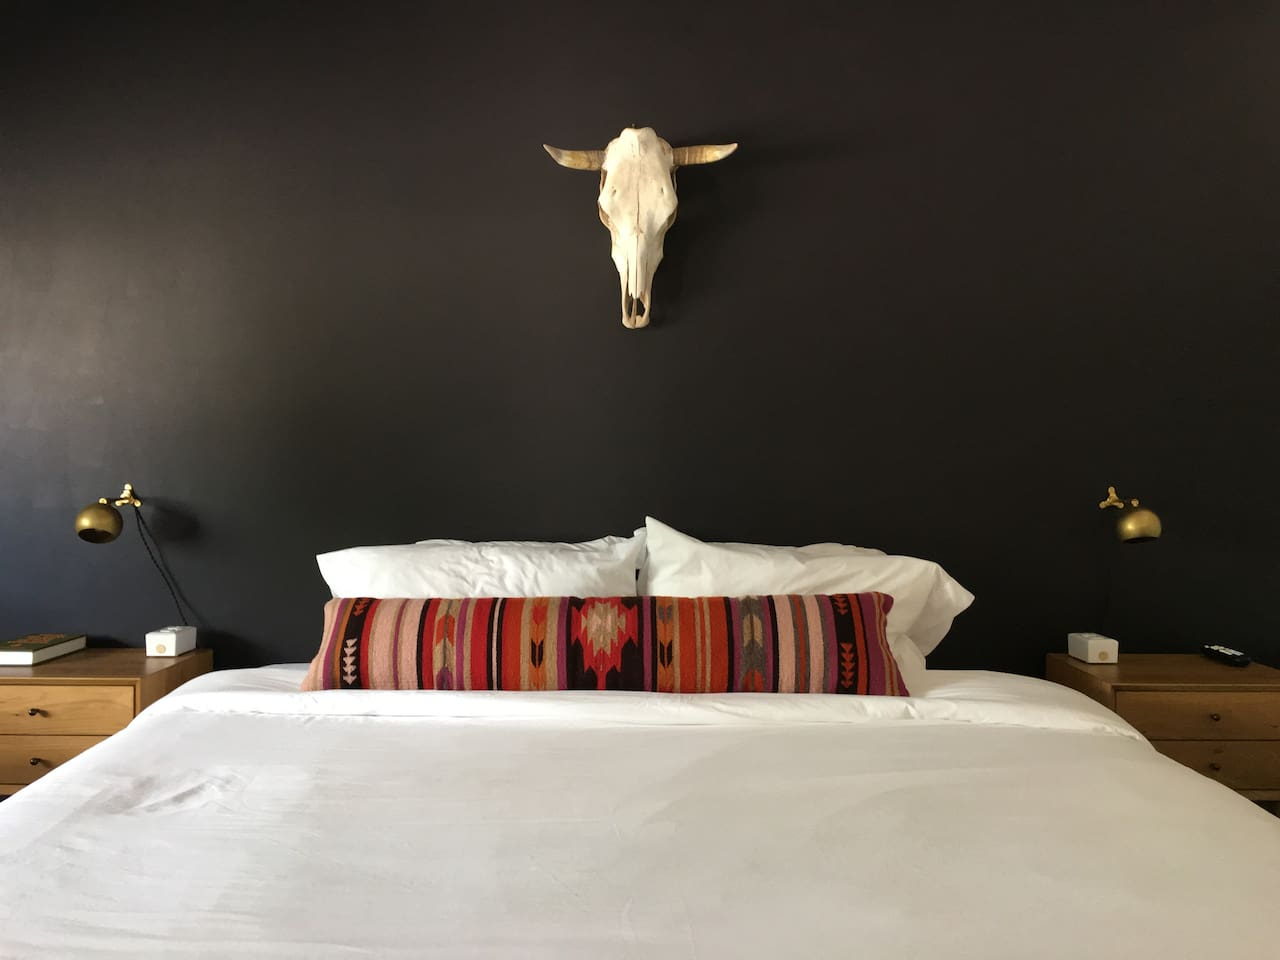 View of the bed and accent wall in Room 04.  This is the same layout you will see in all the king rooms, but with different wall treatments, lights and accents.